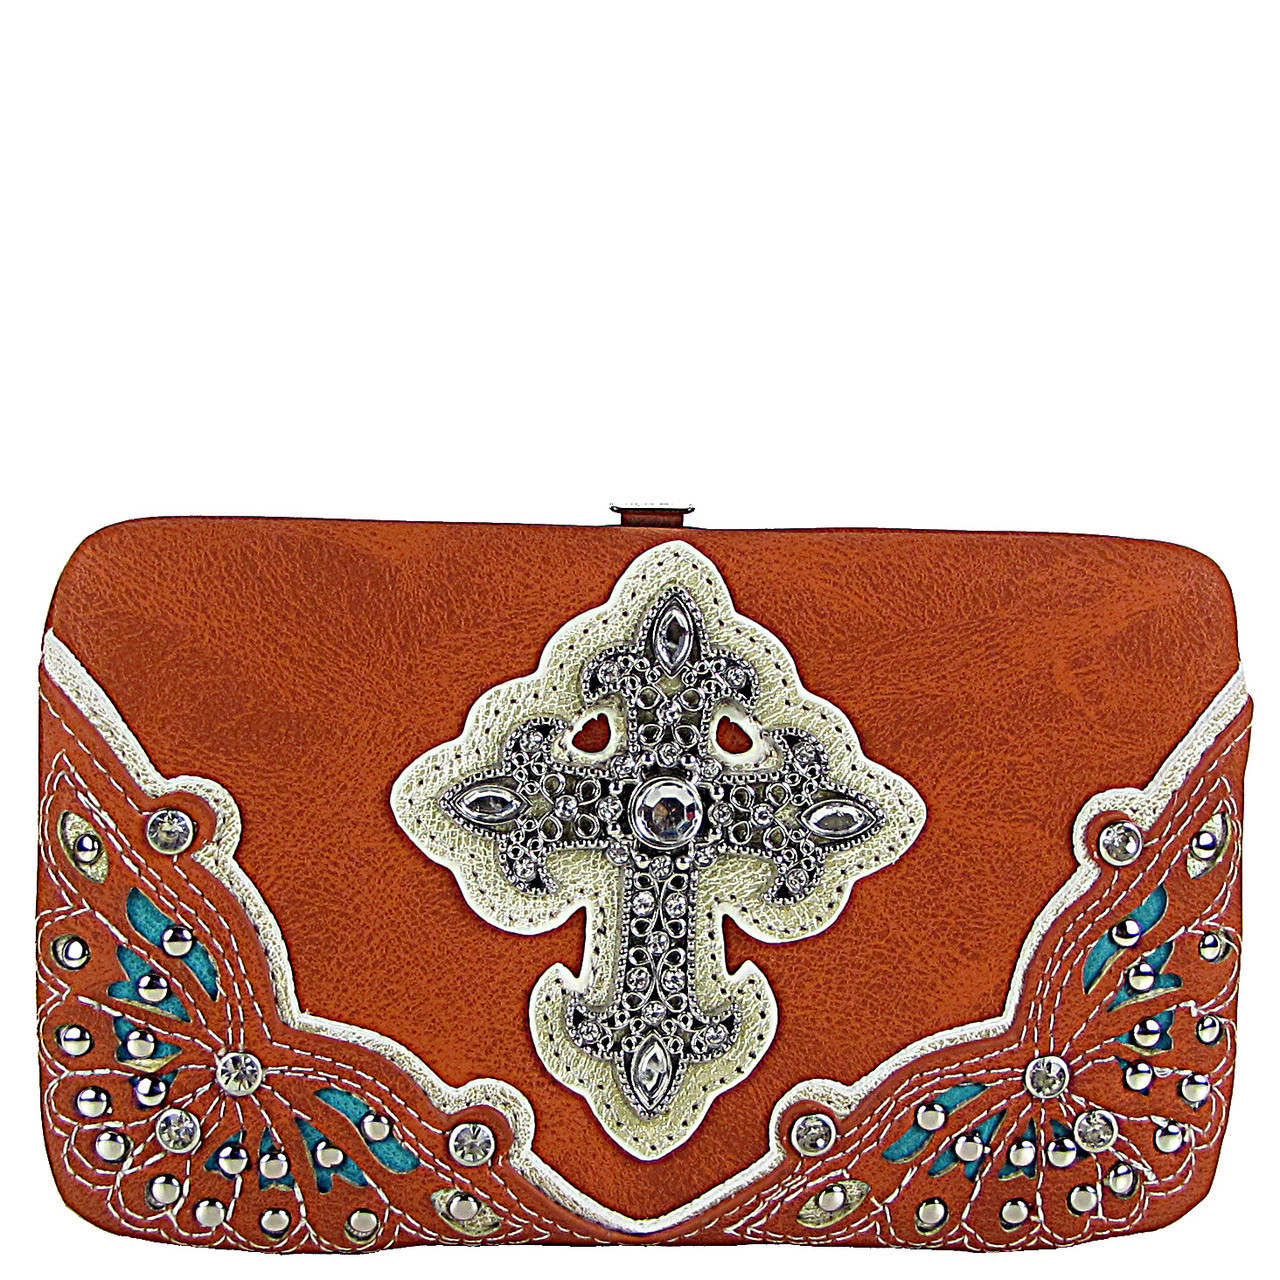 ORANGE RHINESTONE CROSS WESTERN FLAT THICK WALLET FW2-04116ORG